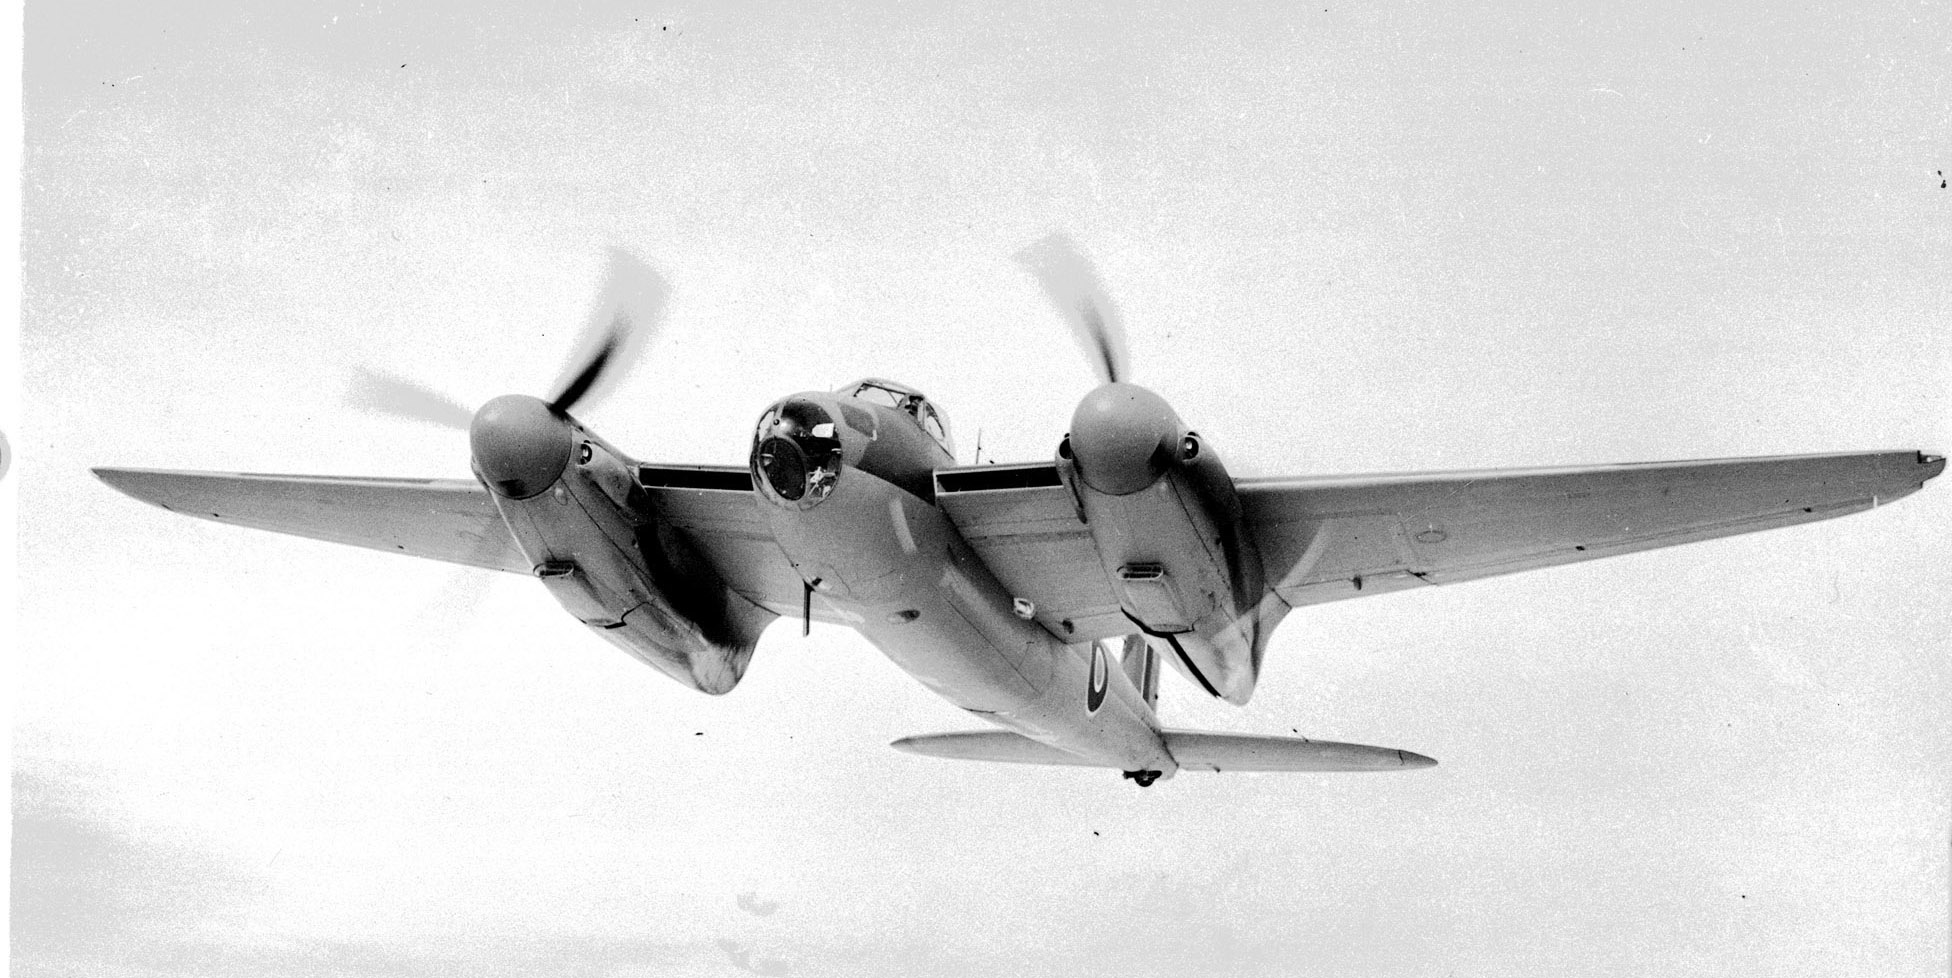 A Mosquito B Mk 25 in flight on January 25, 1943. PHOTO: DND Archives, PL-14570